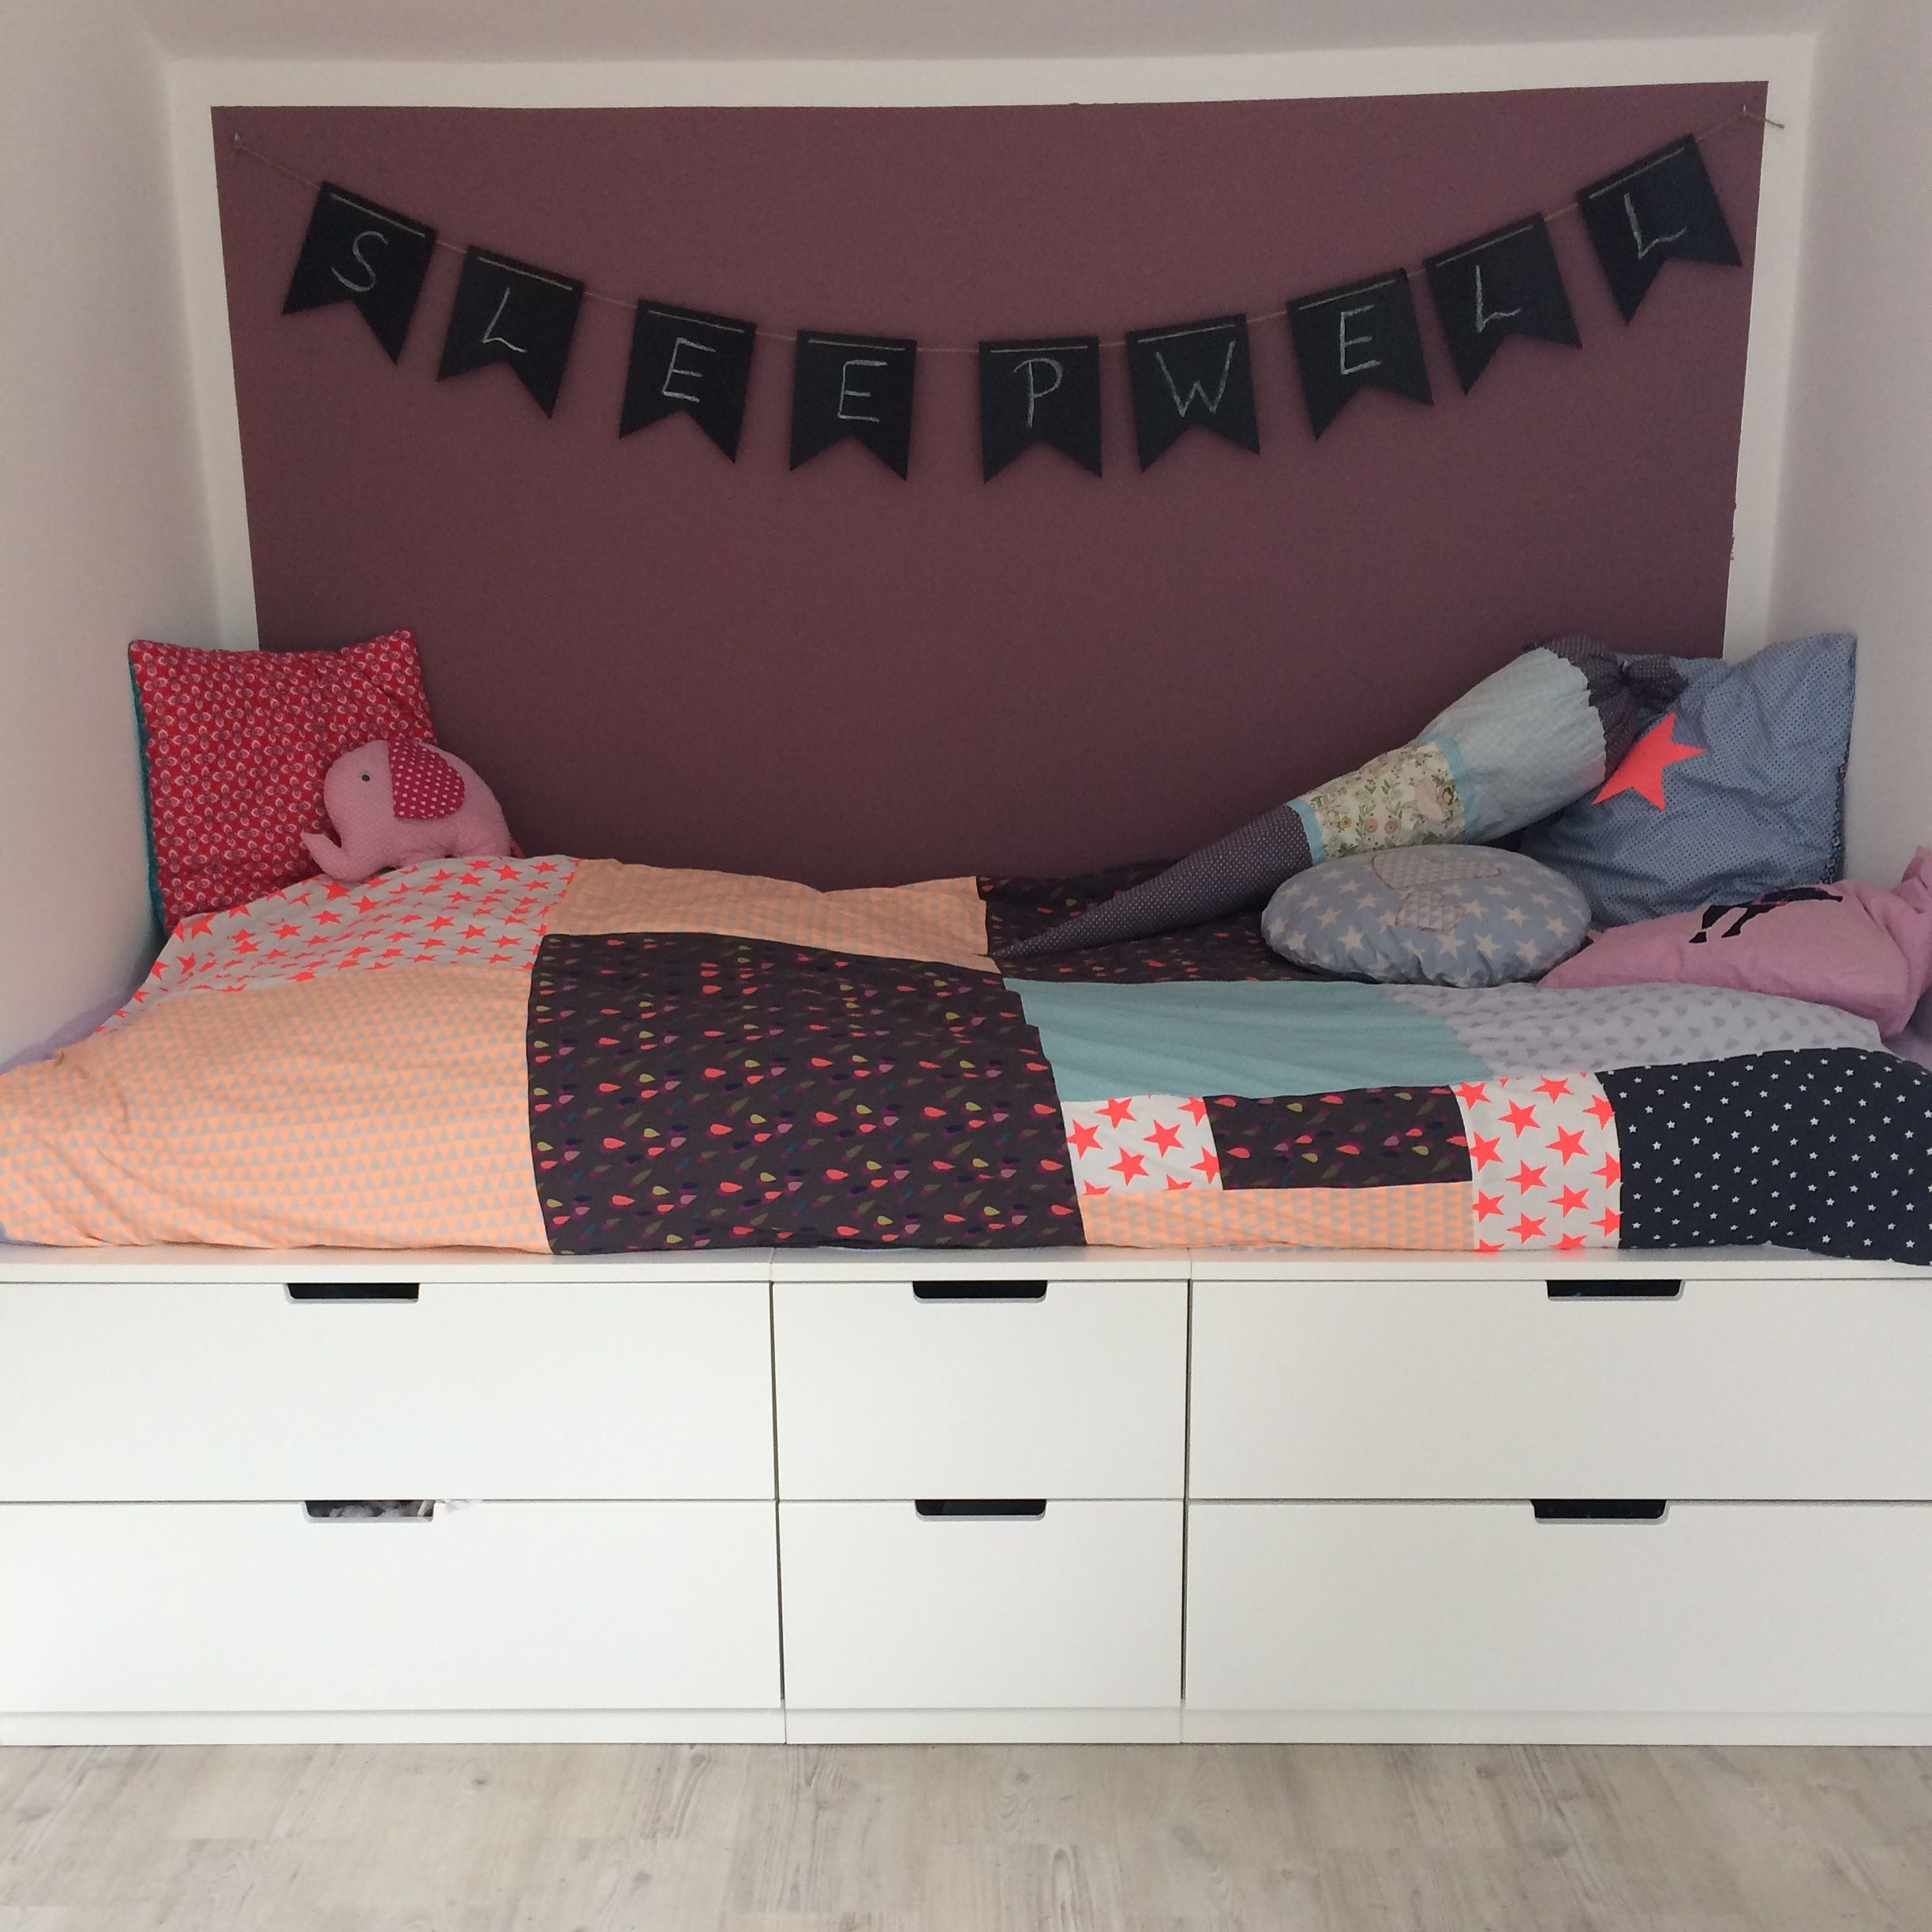 bett auf nordli kommoden ikeahacks kinderzimmer pinterest bedrooms kids rooms and barn. Black Bedroom Furniture Sets. Home Design Ideas